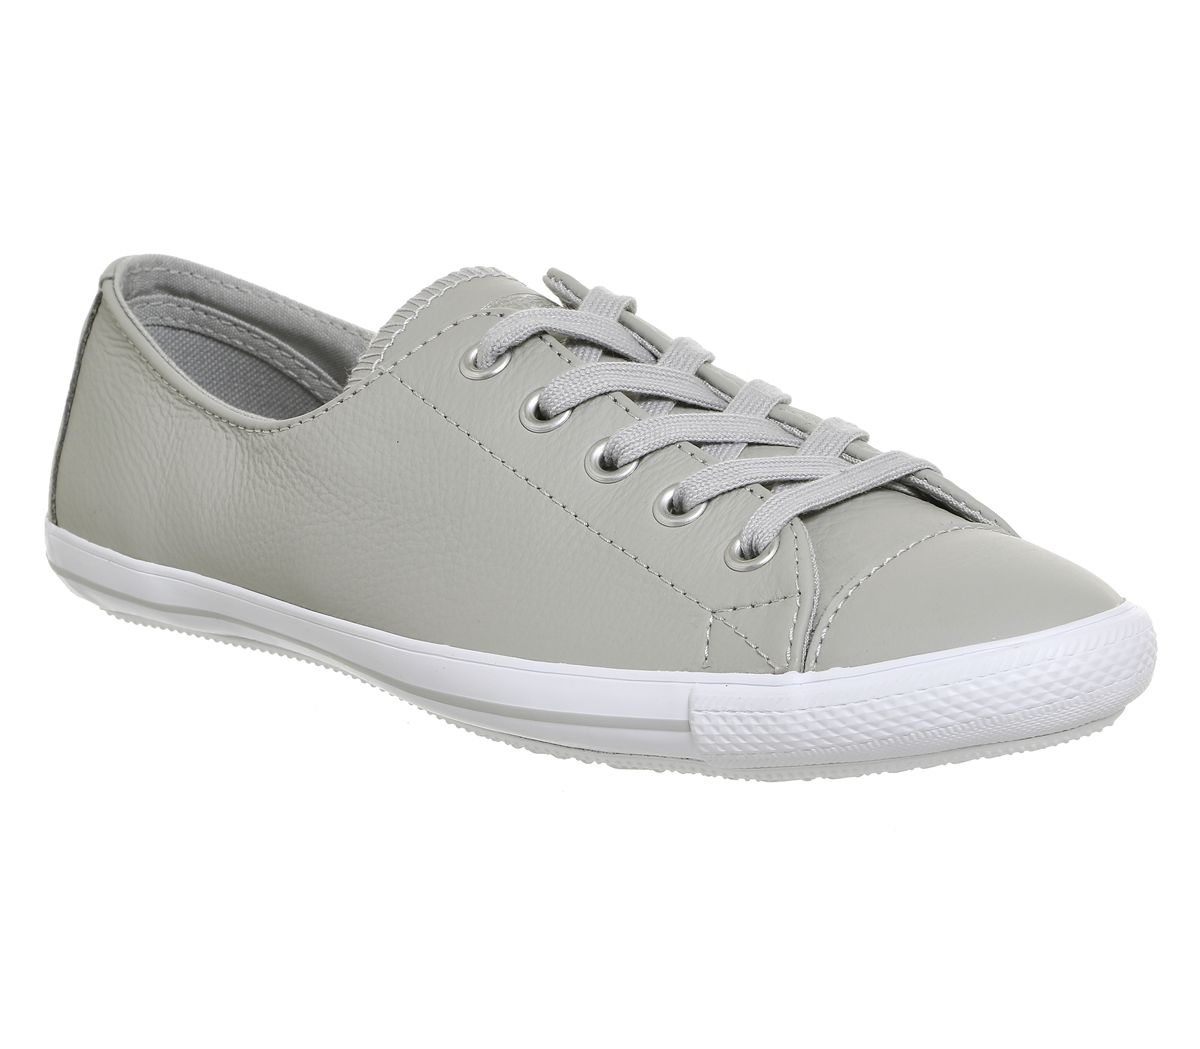 8c87783bd26a Converse Ct Lite 2 Trainers Ash Grey Leather Exclusive - Hers trainers